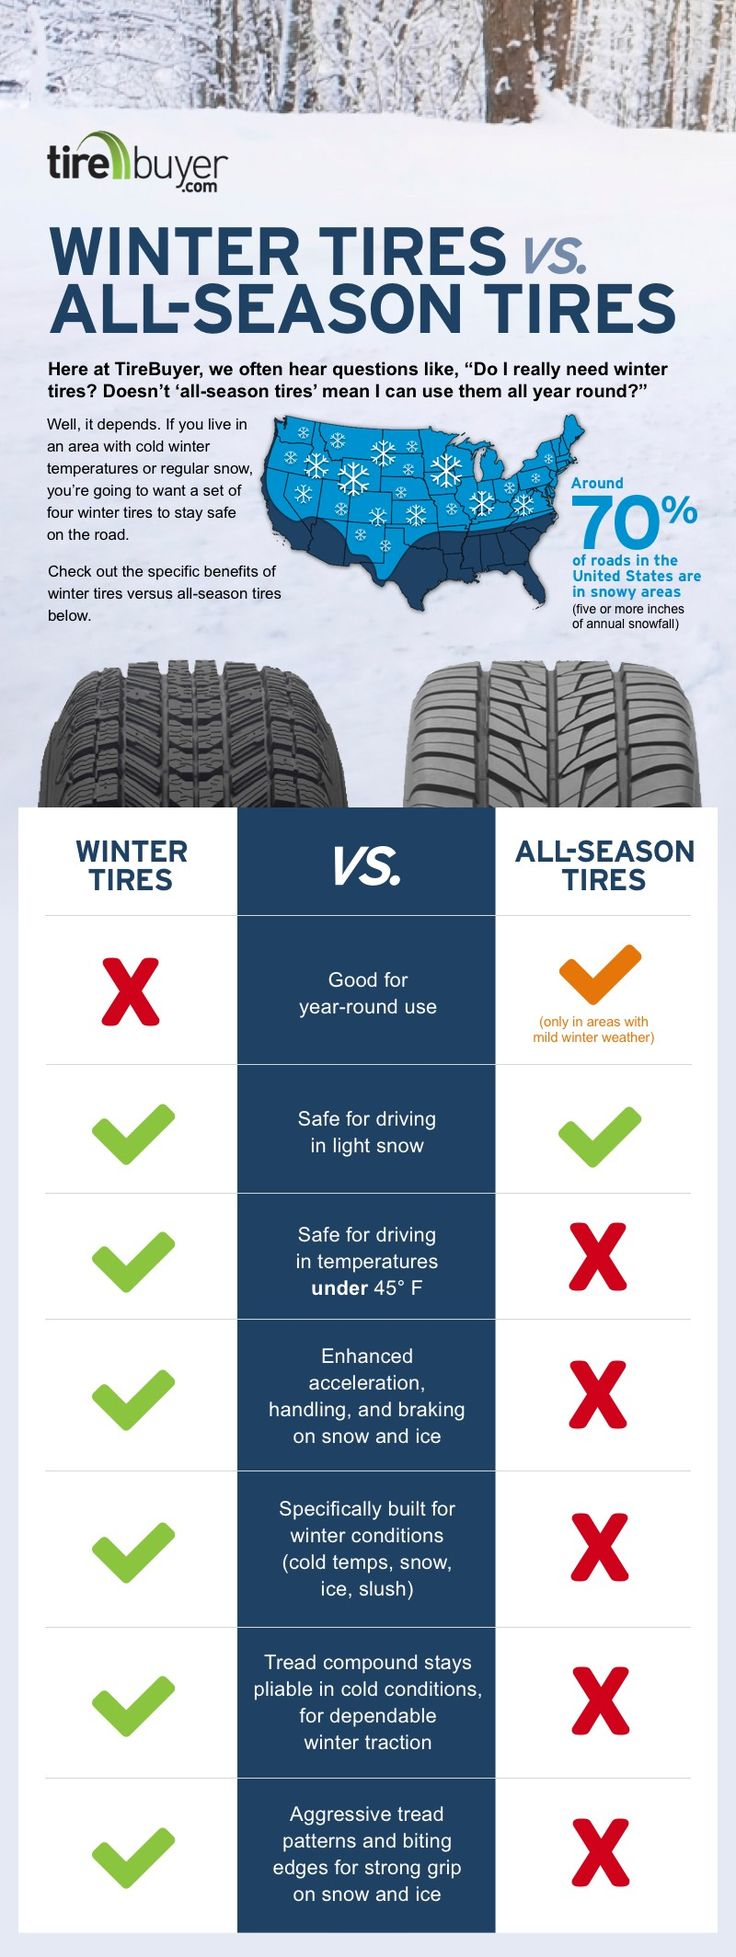 44 best images about All About Tires on Pinterest | Flats, Flat ...